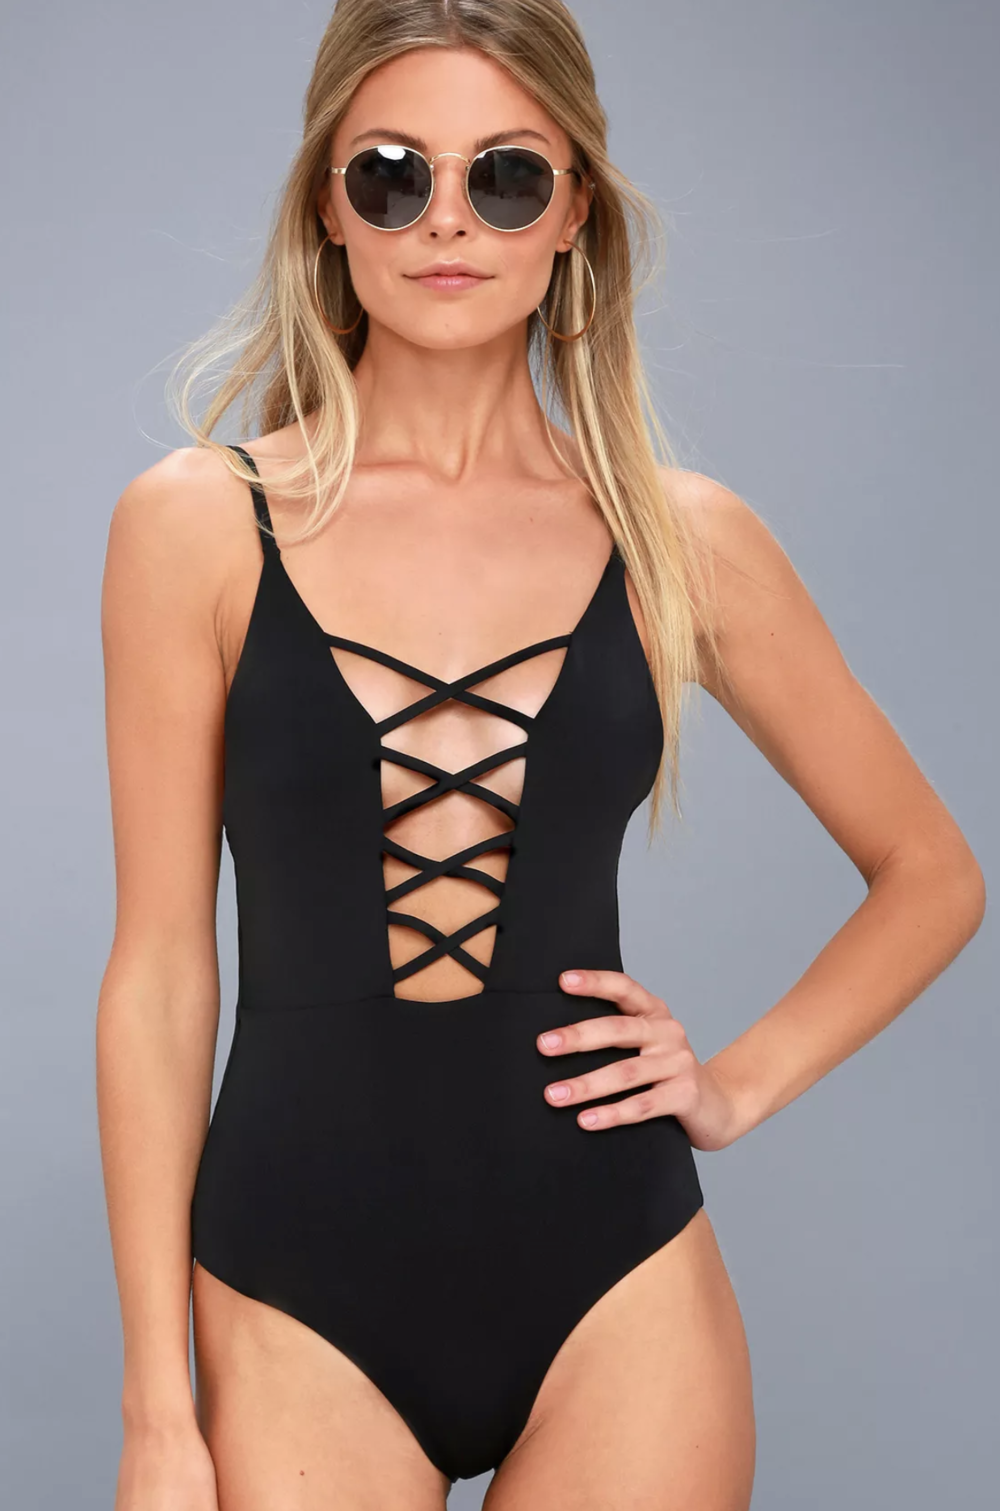 Enjoy the shore in the Lulus Myrtle Beach Black Lace-Up One Piece Swimsuit! Adjustable spaghetti straps top a sleek knit, lace-up bodice and cheeky bottoms. PLEASE NOTE: Swimwear returned without the hygienic liner is non-refundable.